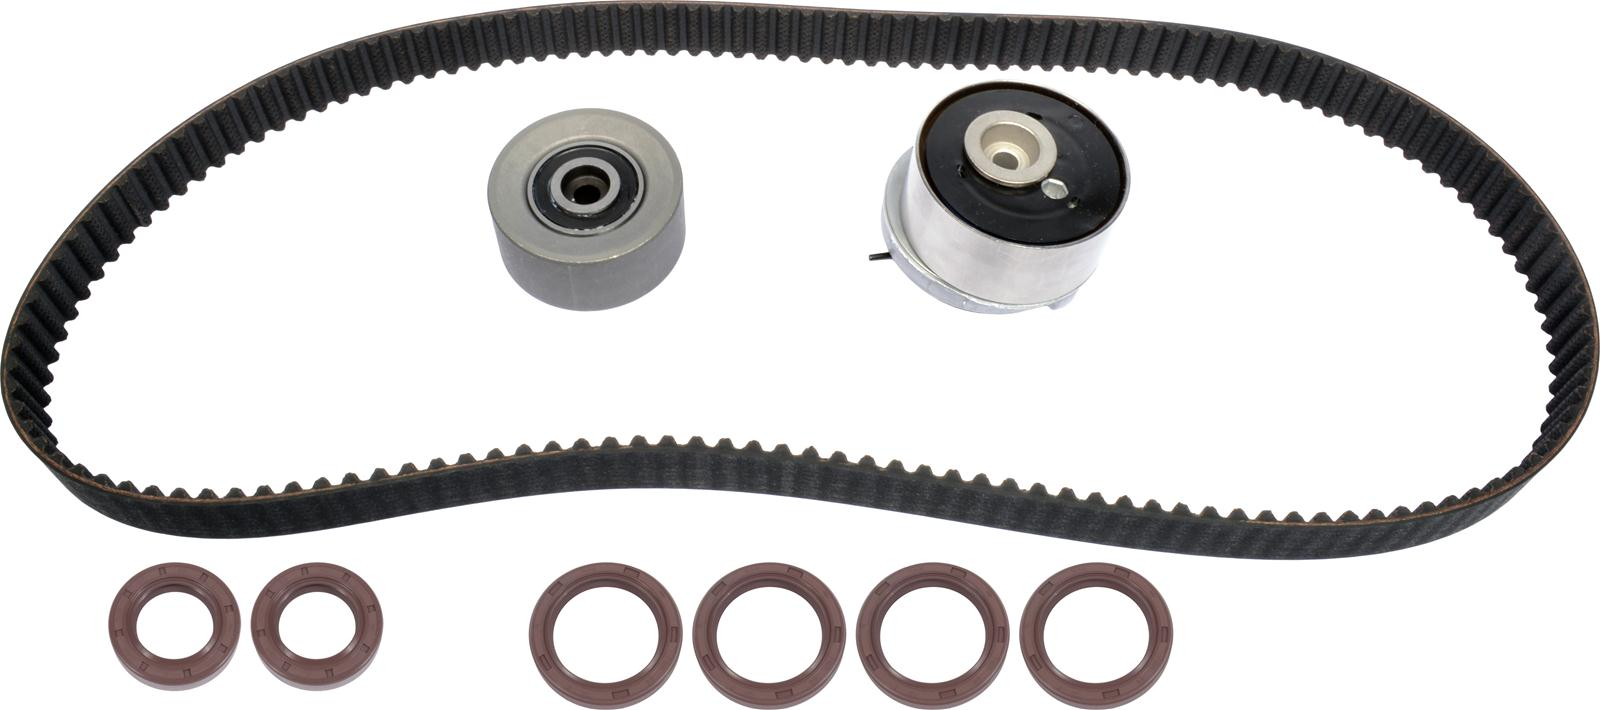 hight resolution of chevrolet aveo continental elite timing belt kits gtk0338 free shipping on orders over 99 at summit racing